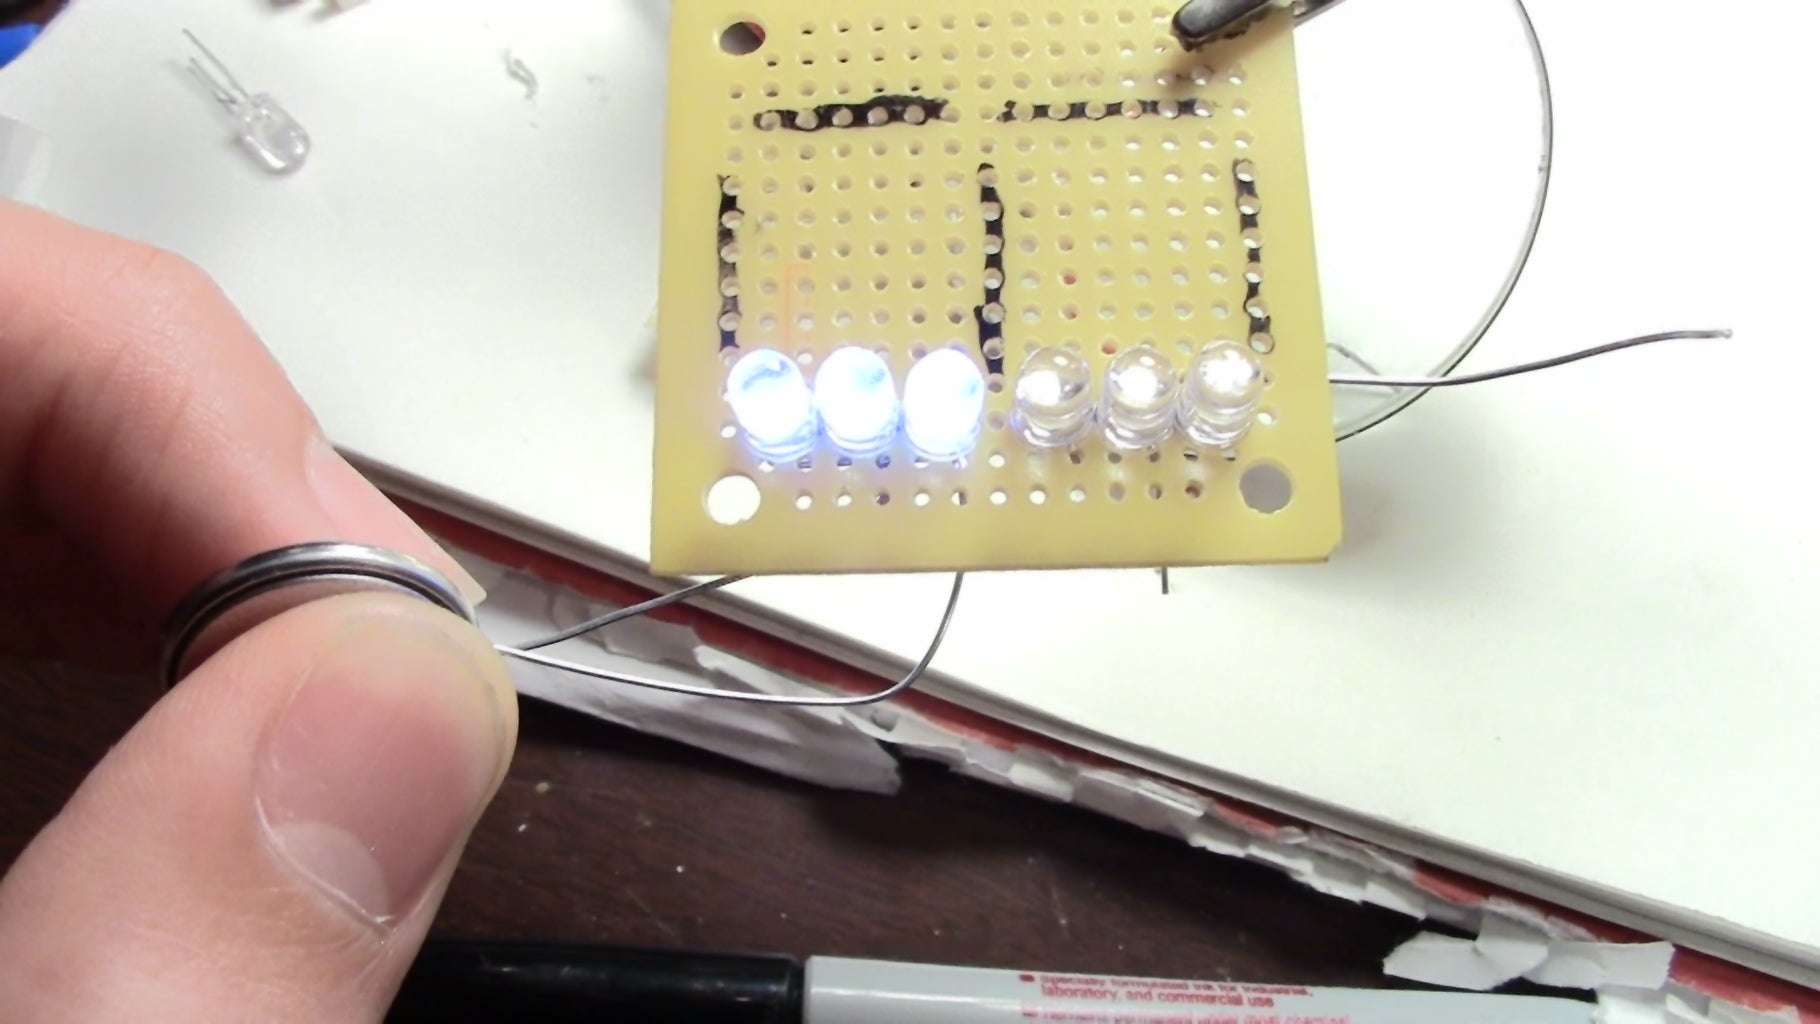 Finish All the Soldering